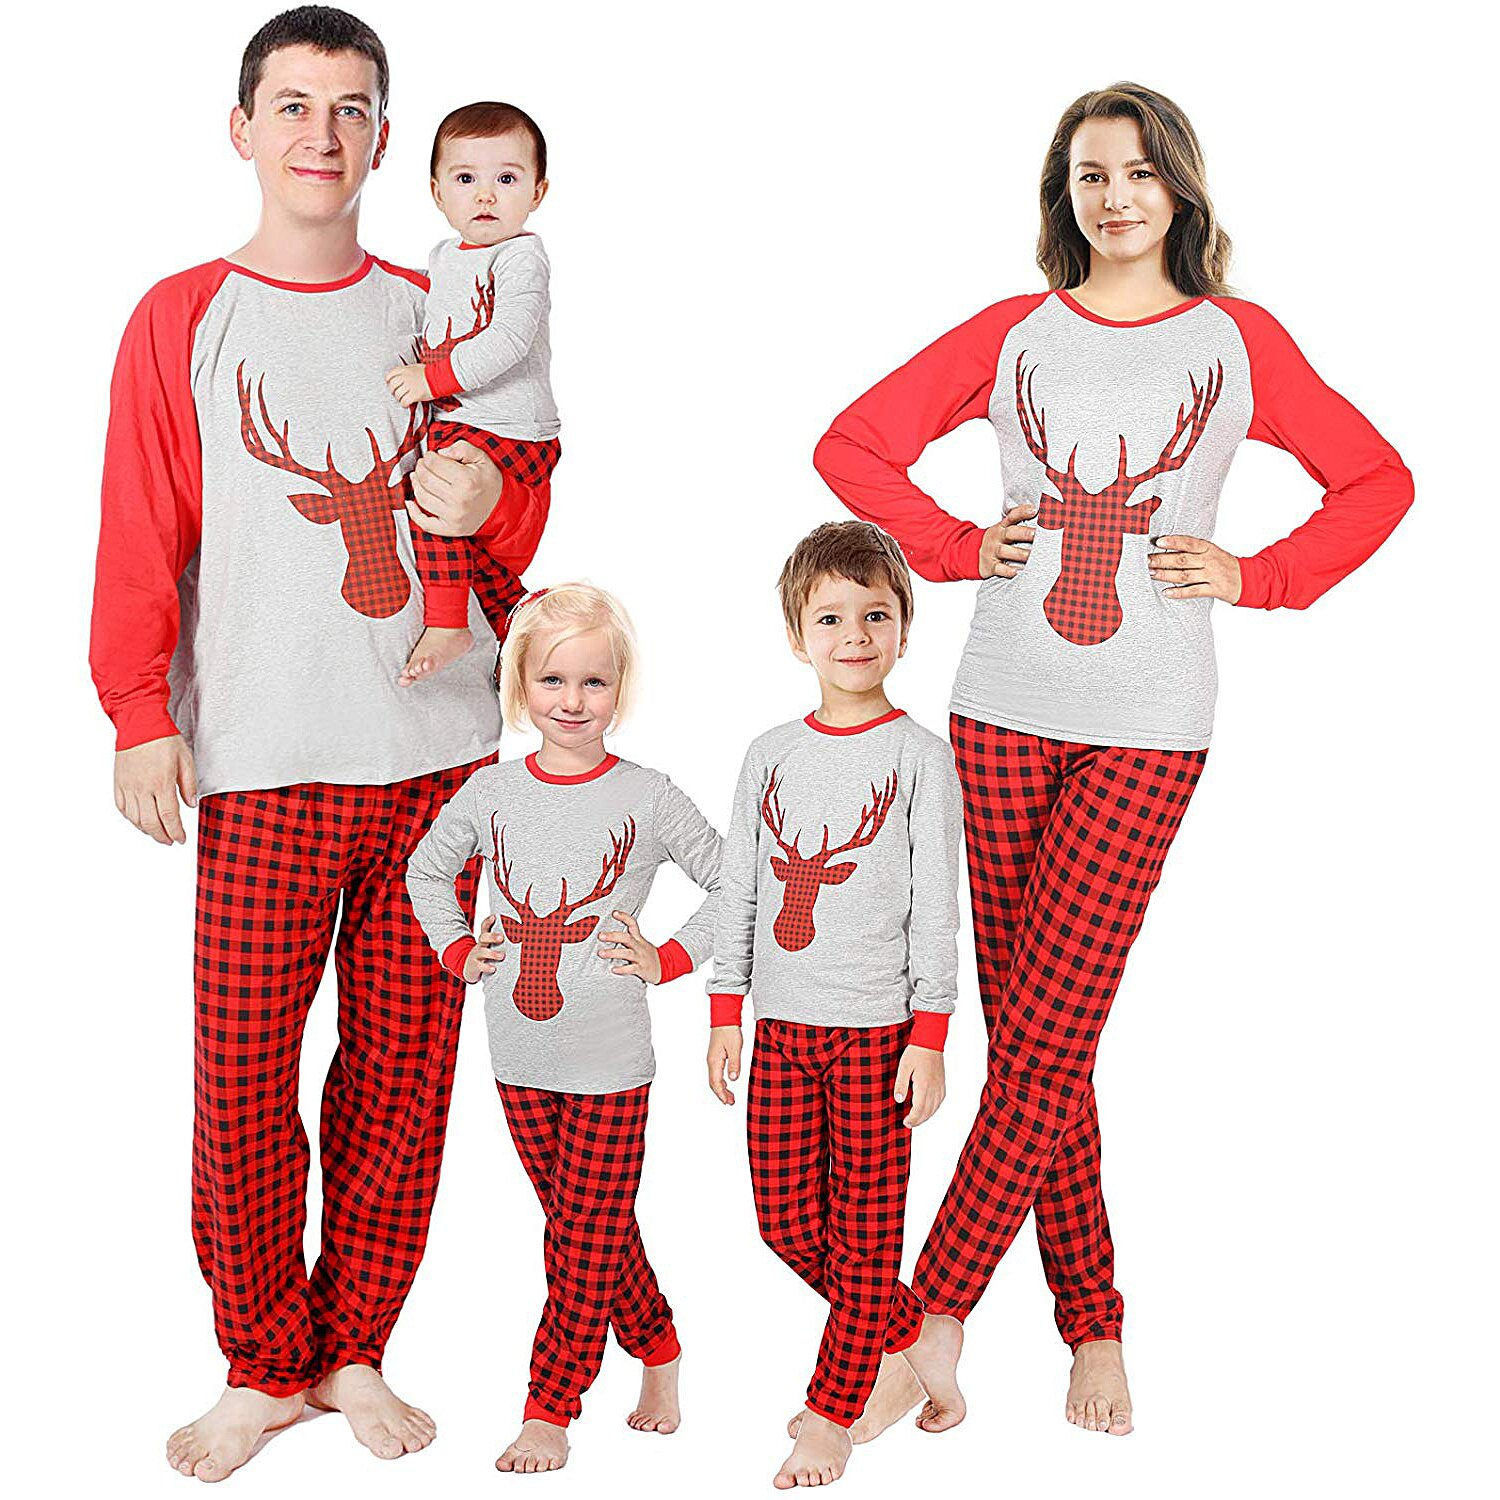 16 Family Christmas Pajamas You Can Shop For 2019 Real Simple